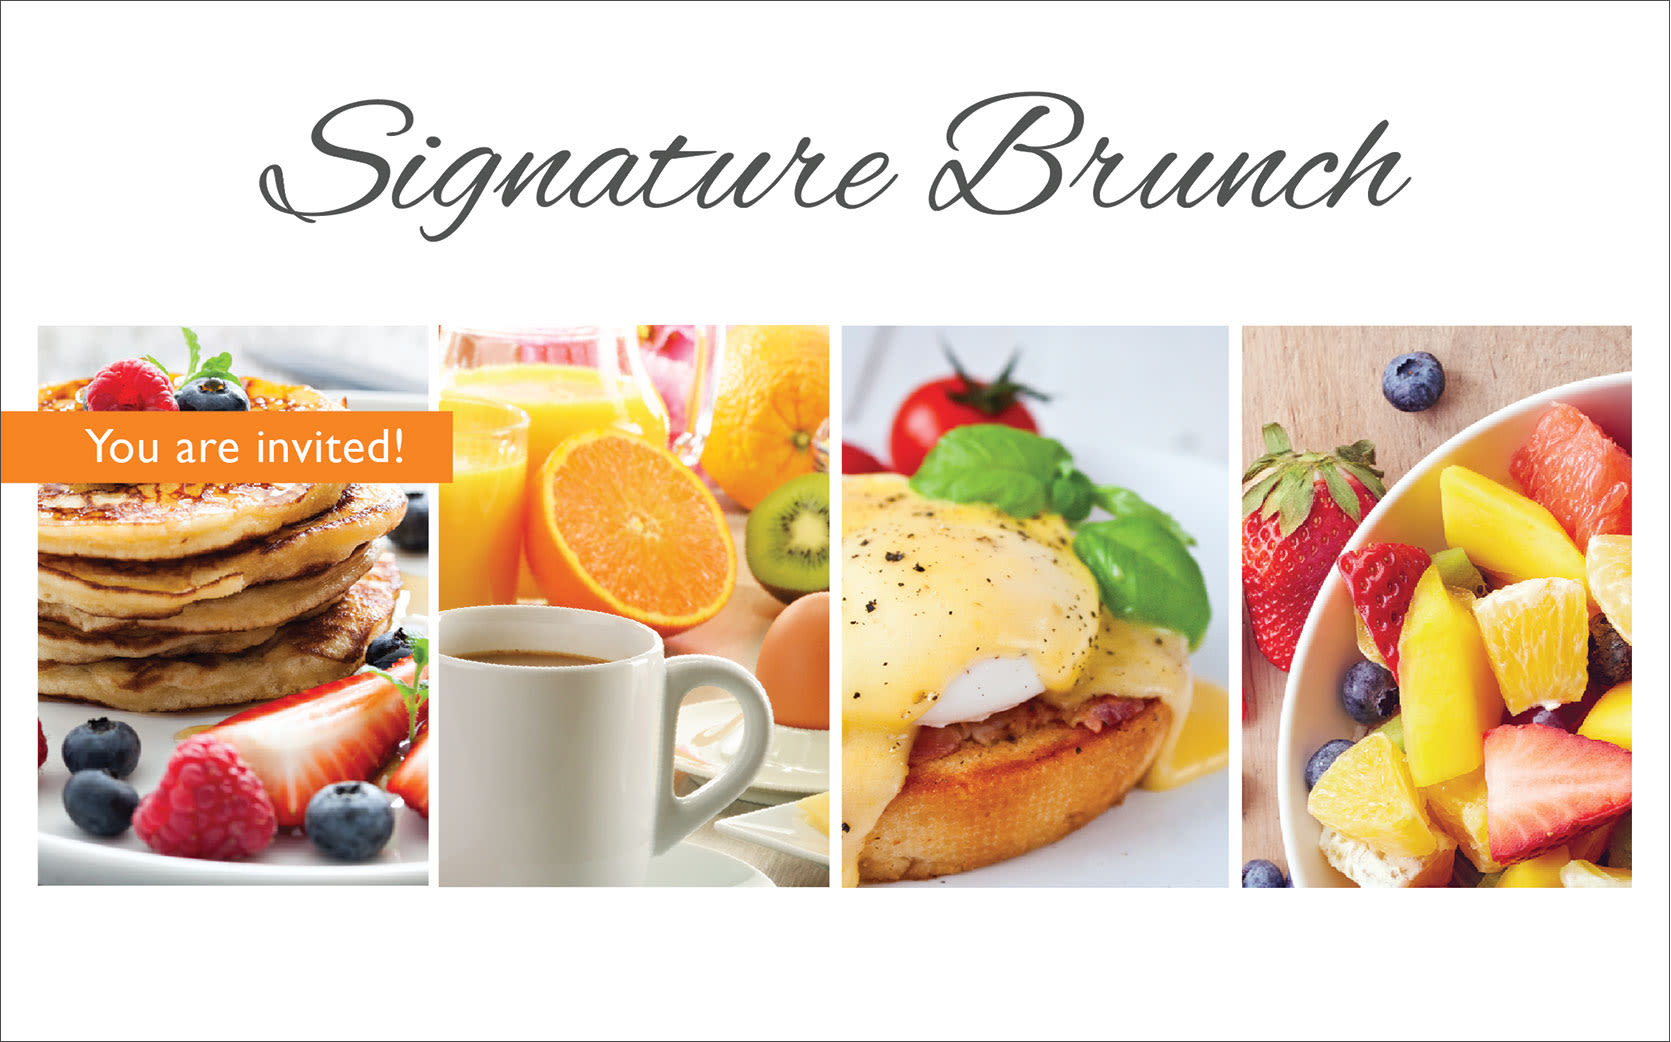 Signature brunch at the senior living community in Petaluma